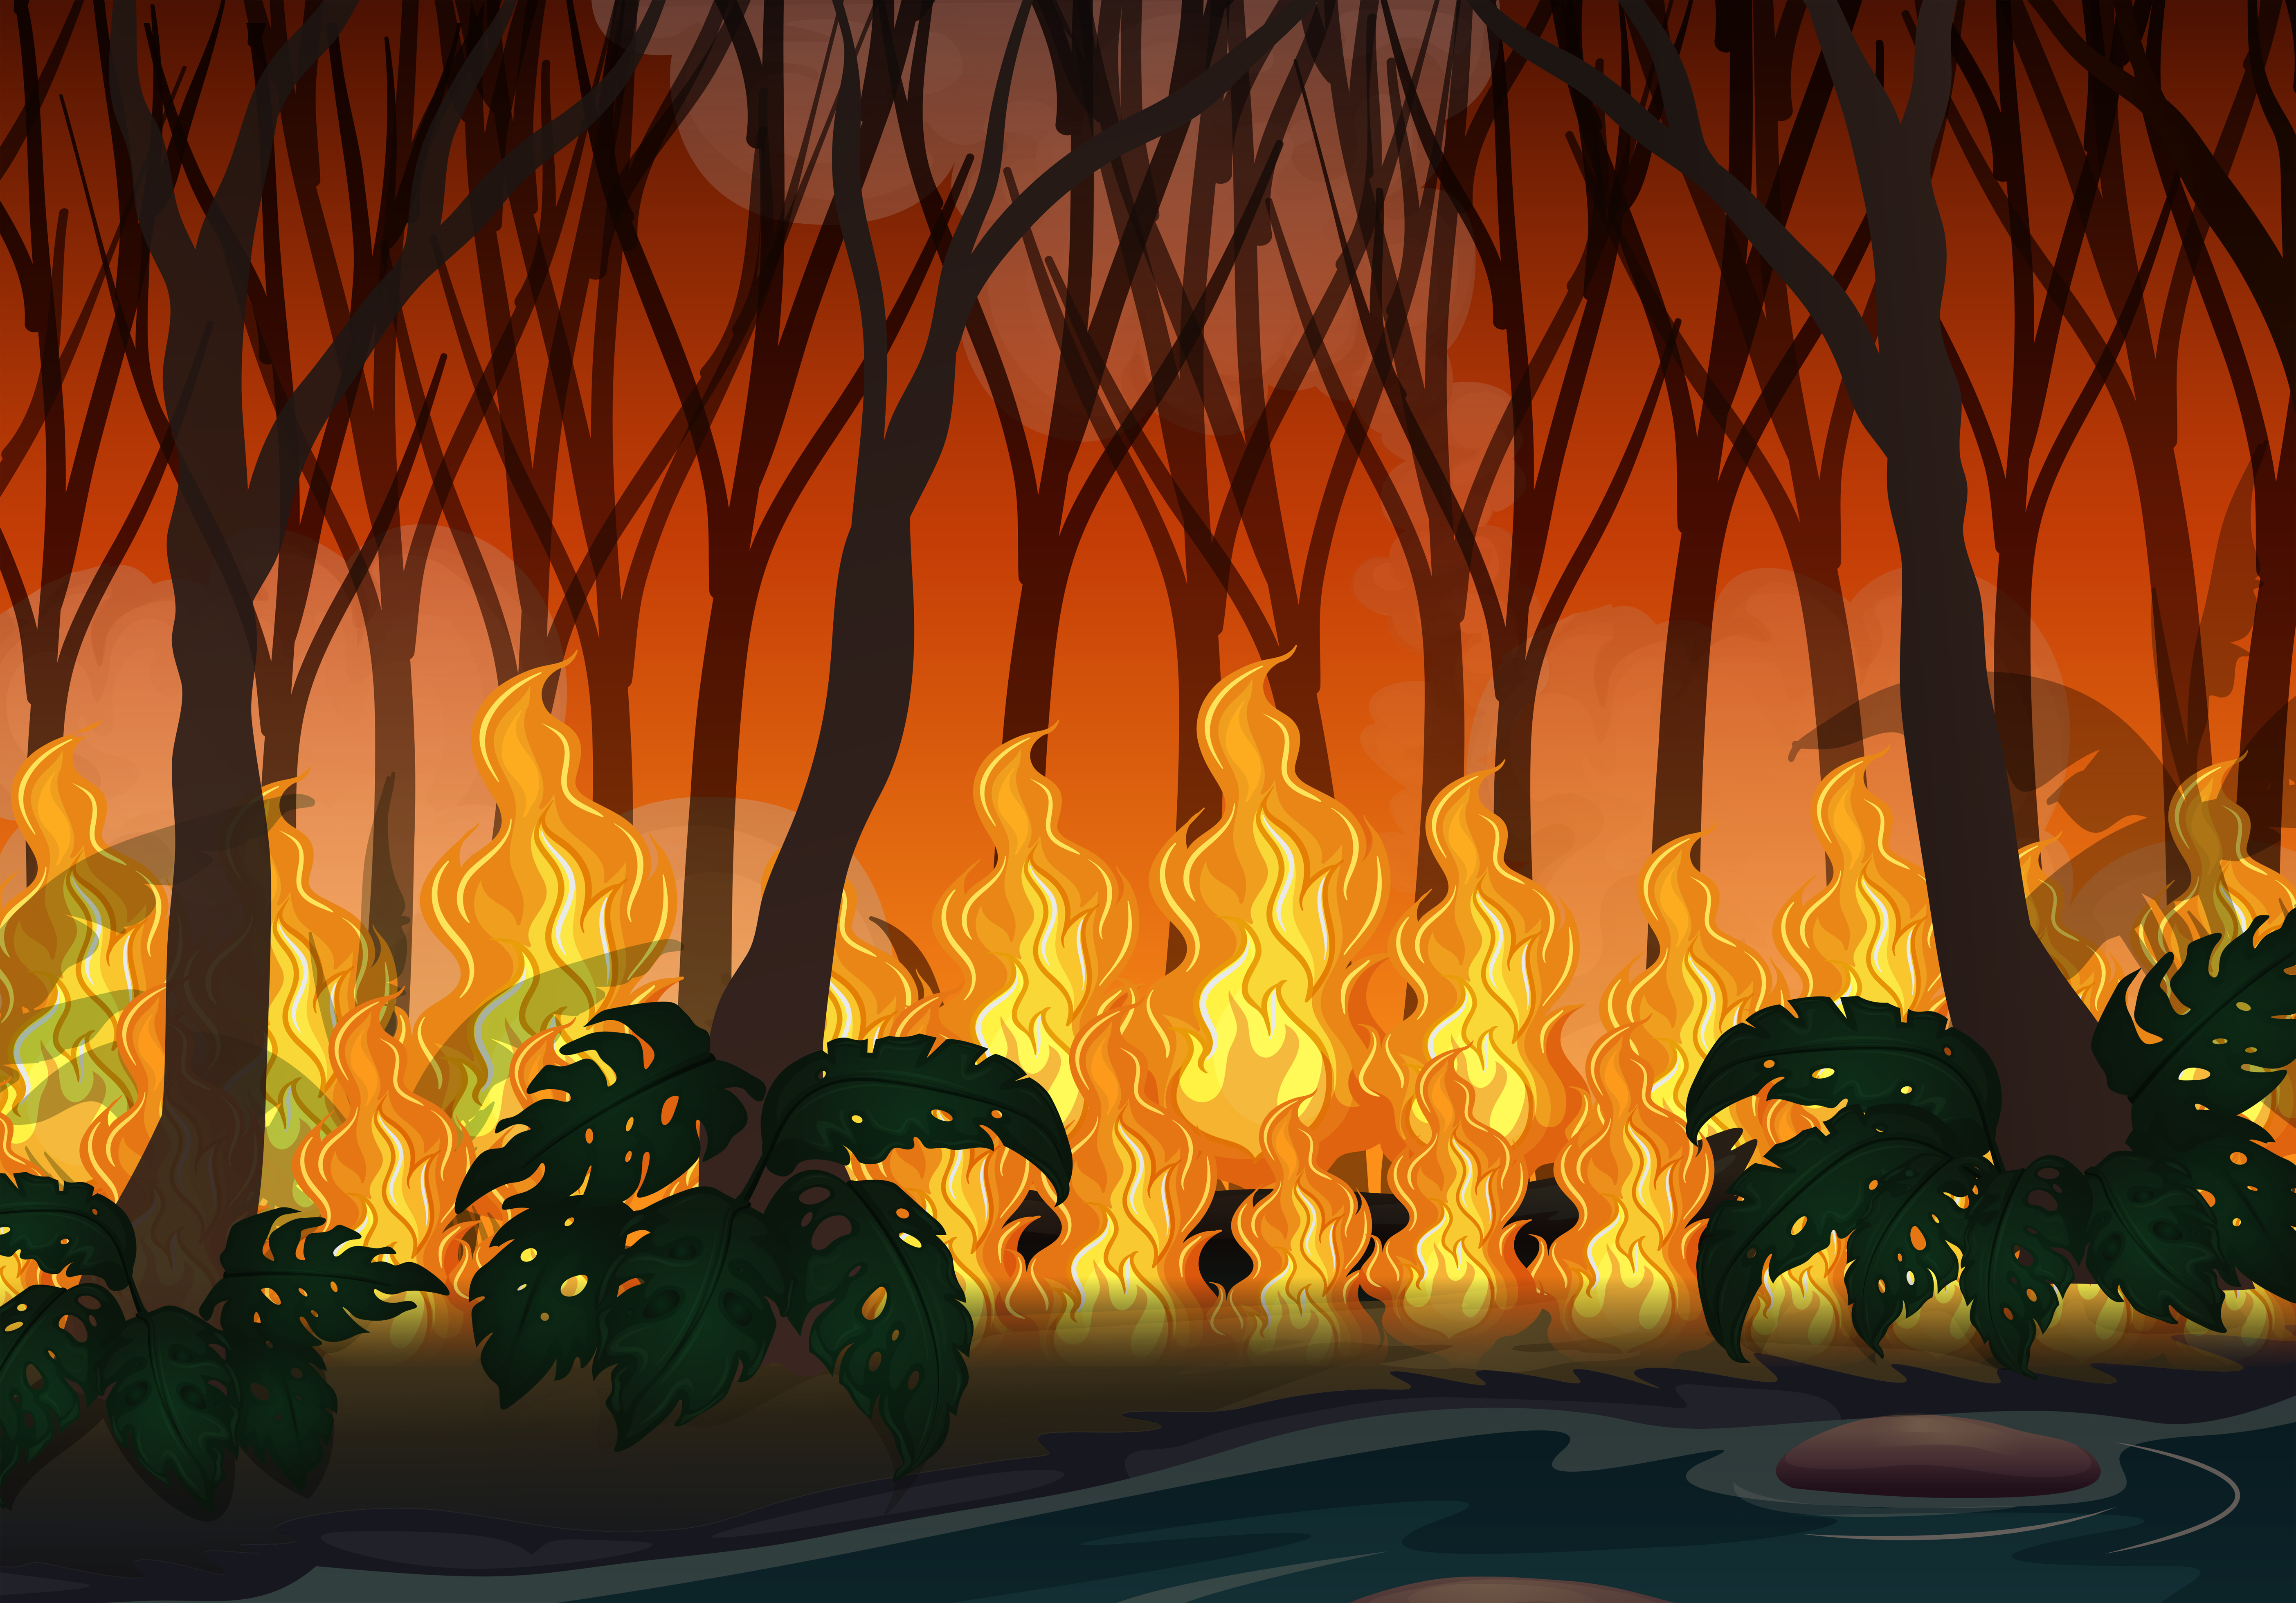 wildfire disaster in big forest